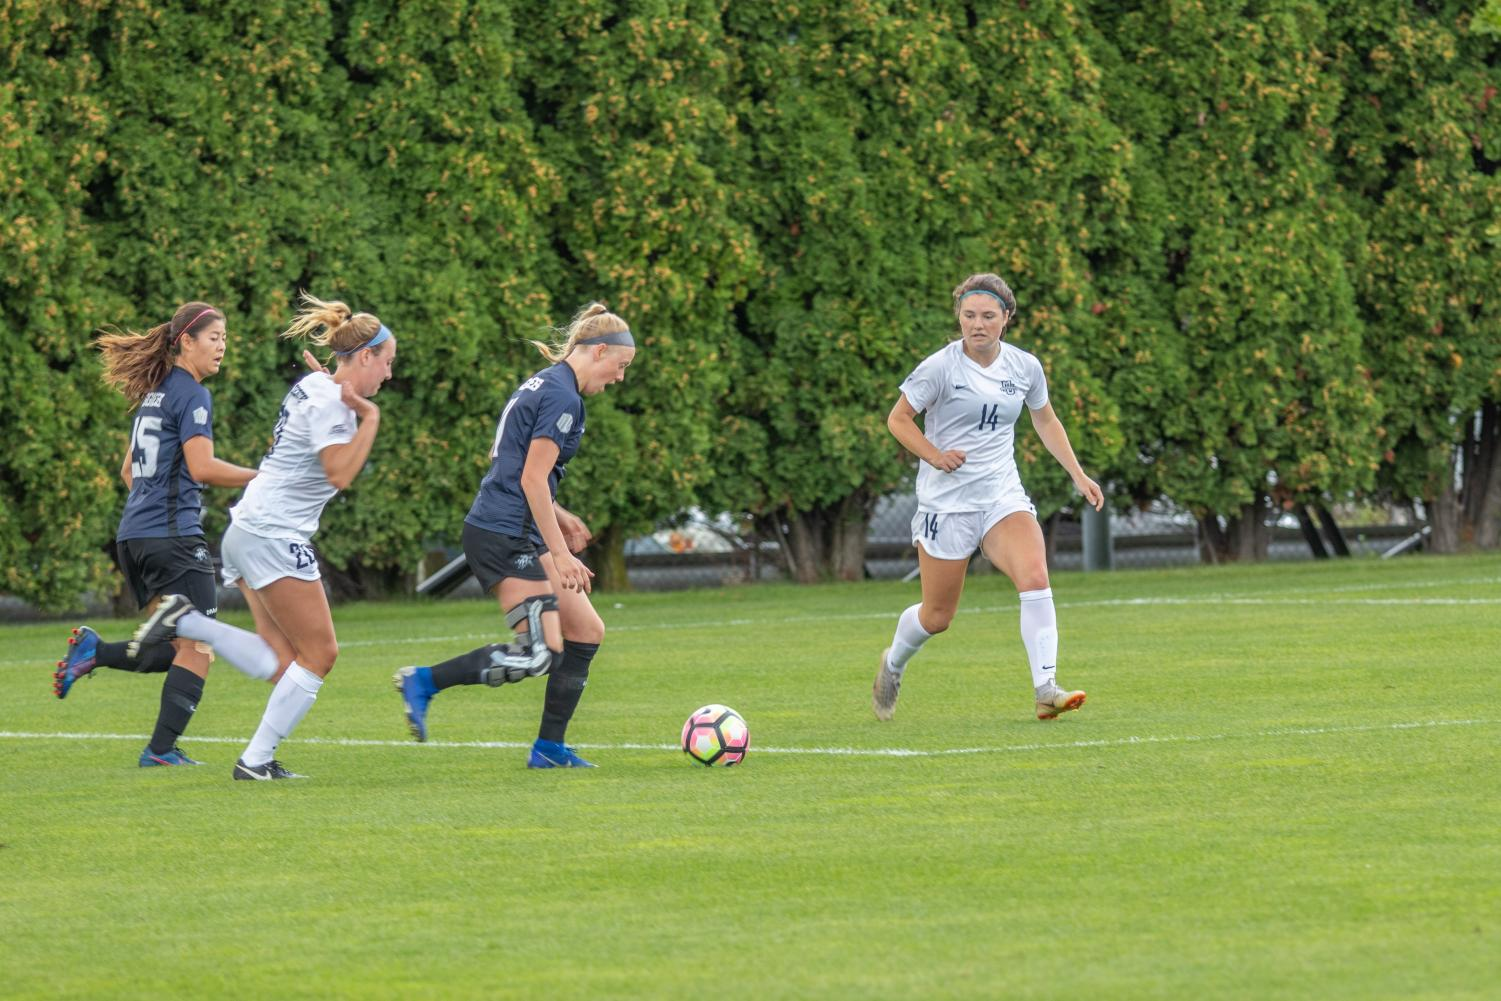 Utah State scored three goals in a span of less than eight minutes Sunday against Marquette at Valley Fields.